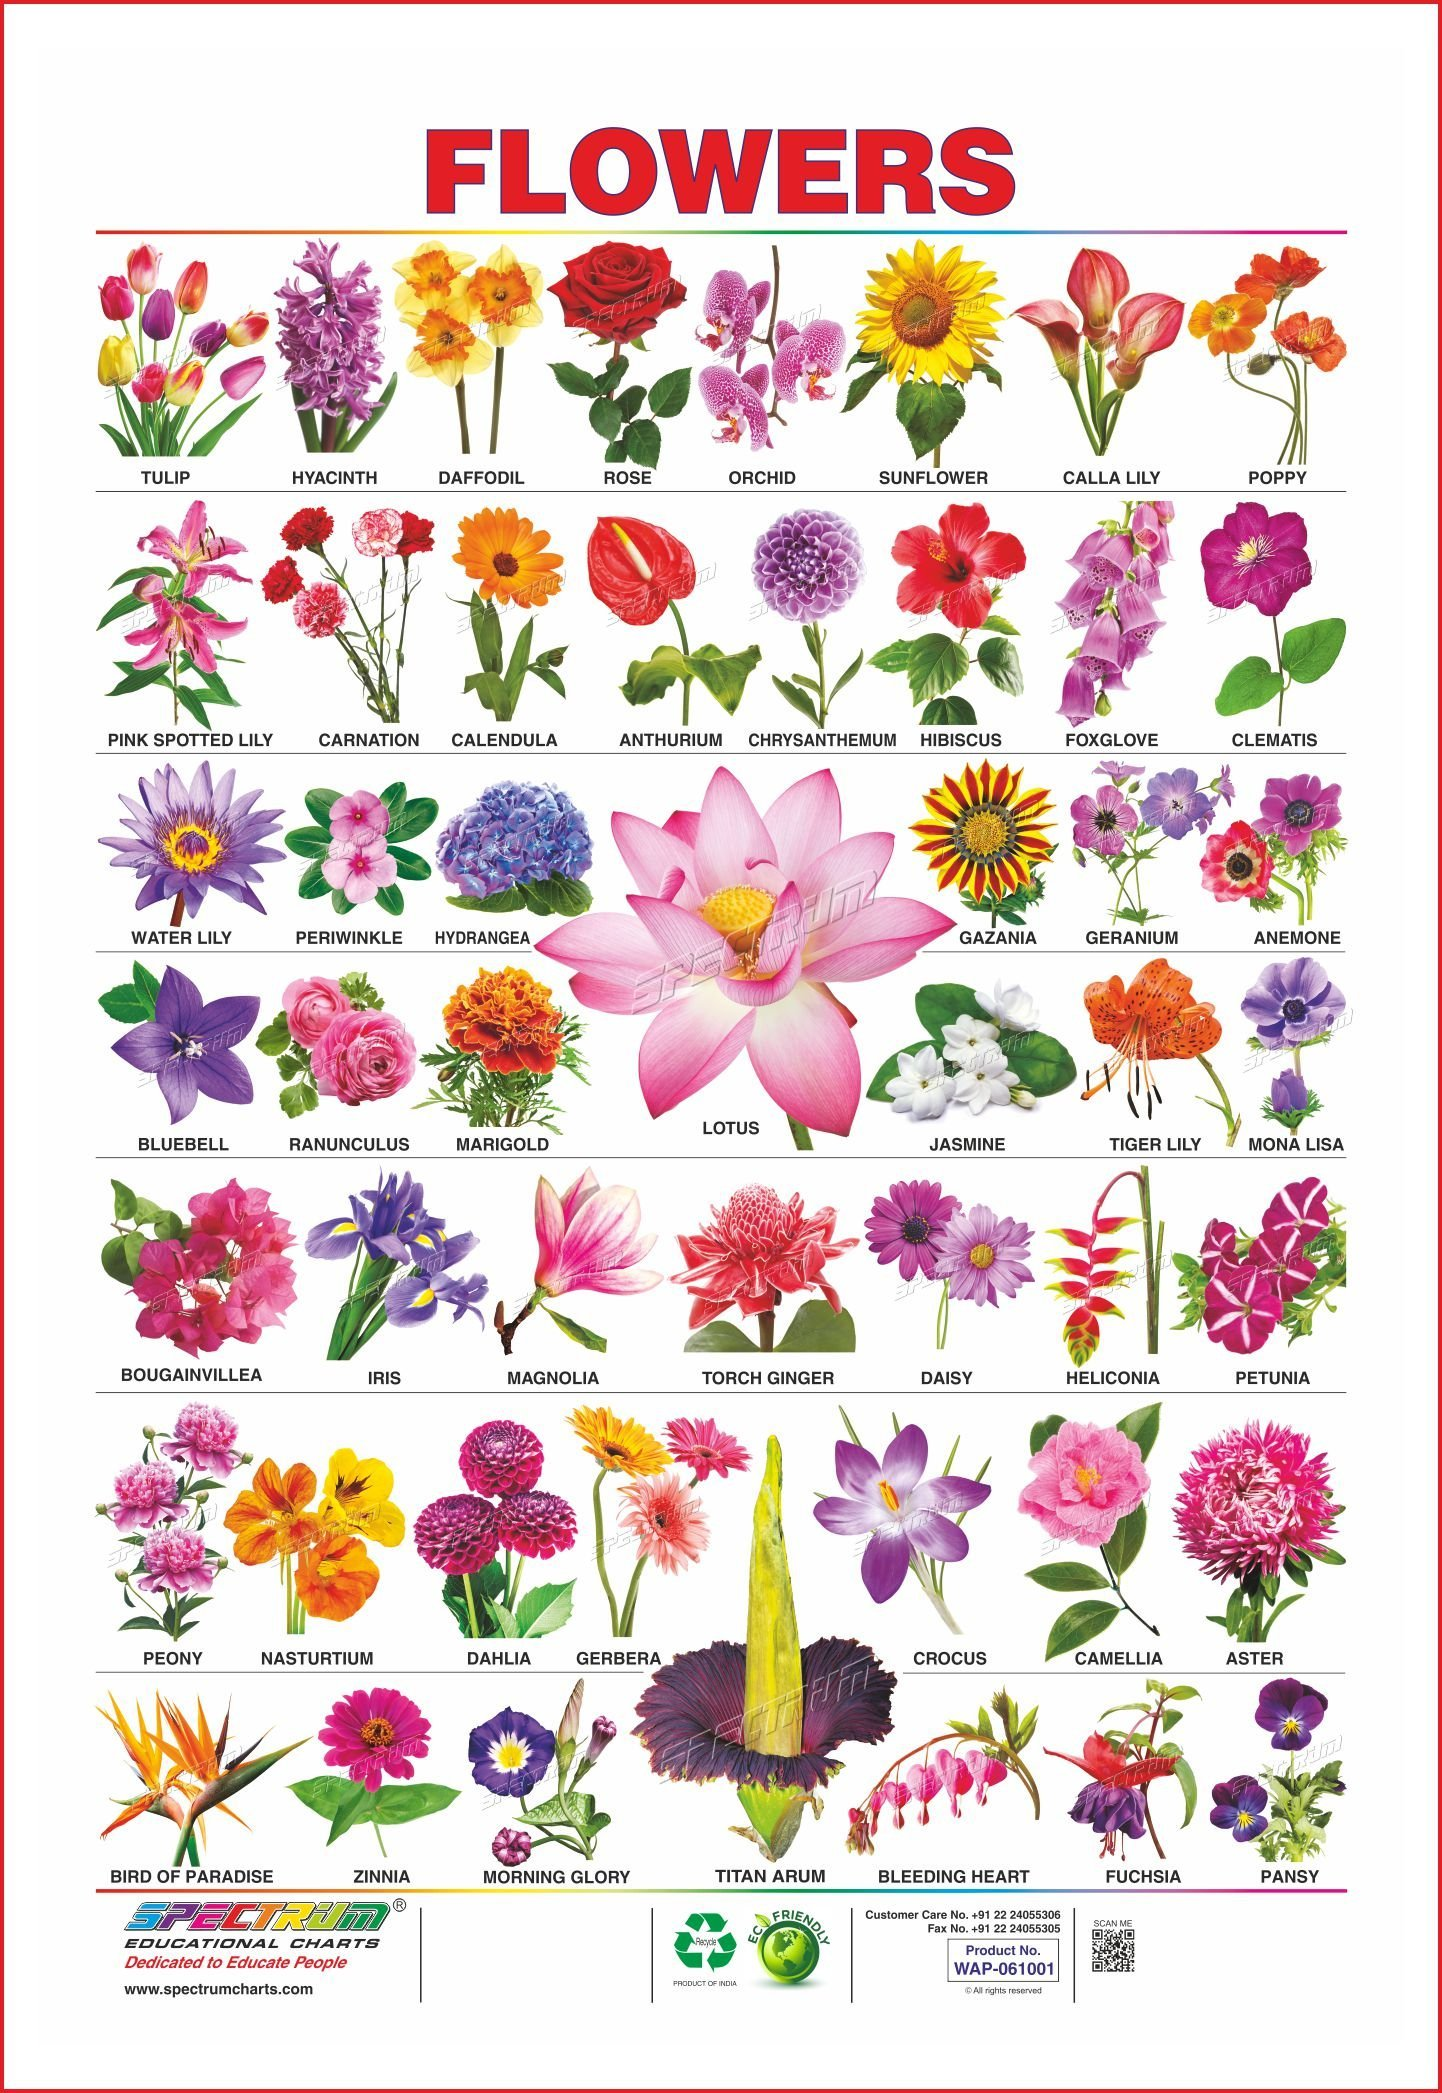 Buy set of 5 educational charts wild animals birds assorted buy set of 5 educational charts wild animals birds assorted fruits 1 vegetables 1 flowers 1 book online at low prices in india set of 5 izmirmasajfo